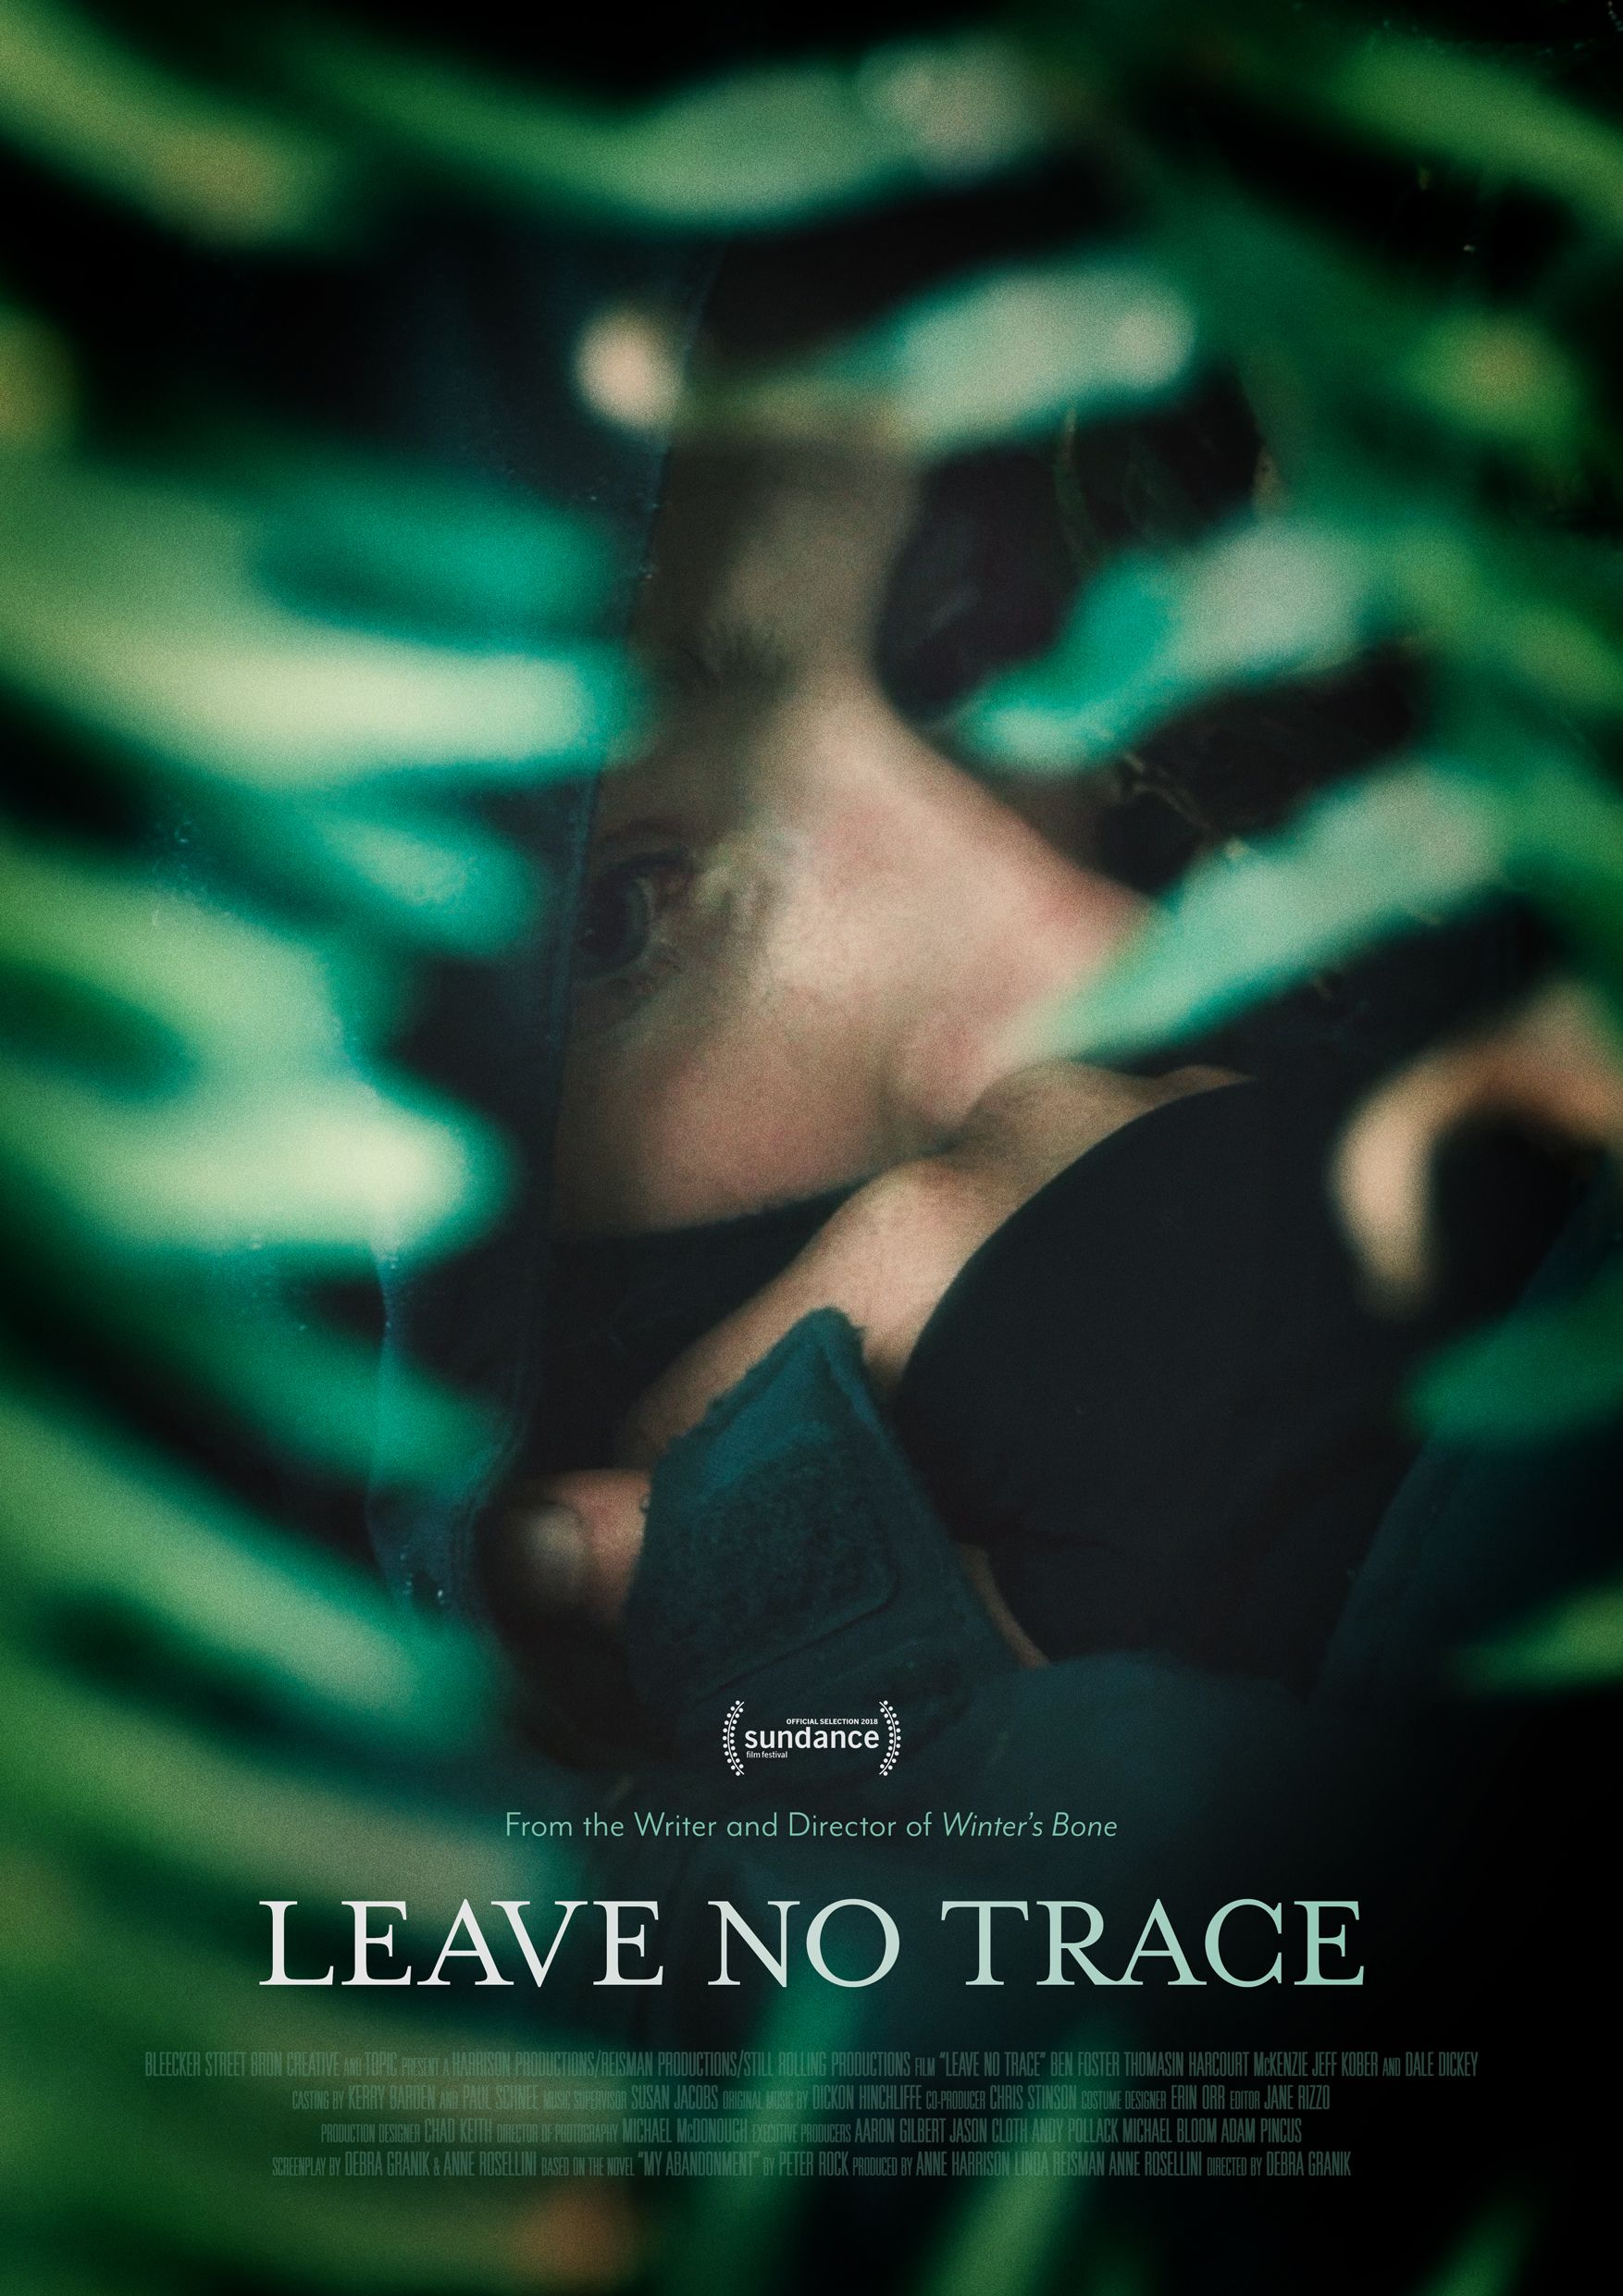 Leave No Trace 2018 1754 X 2481 Full Movies Free Movies Online Full Movies Online Free